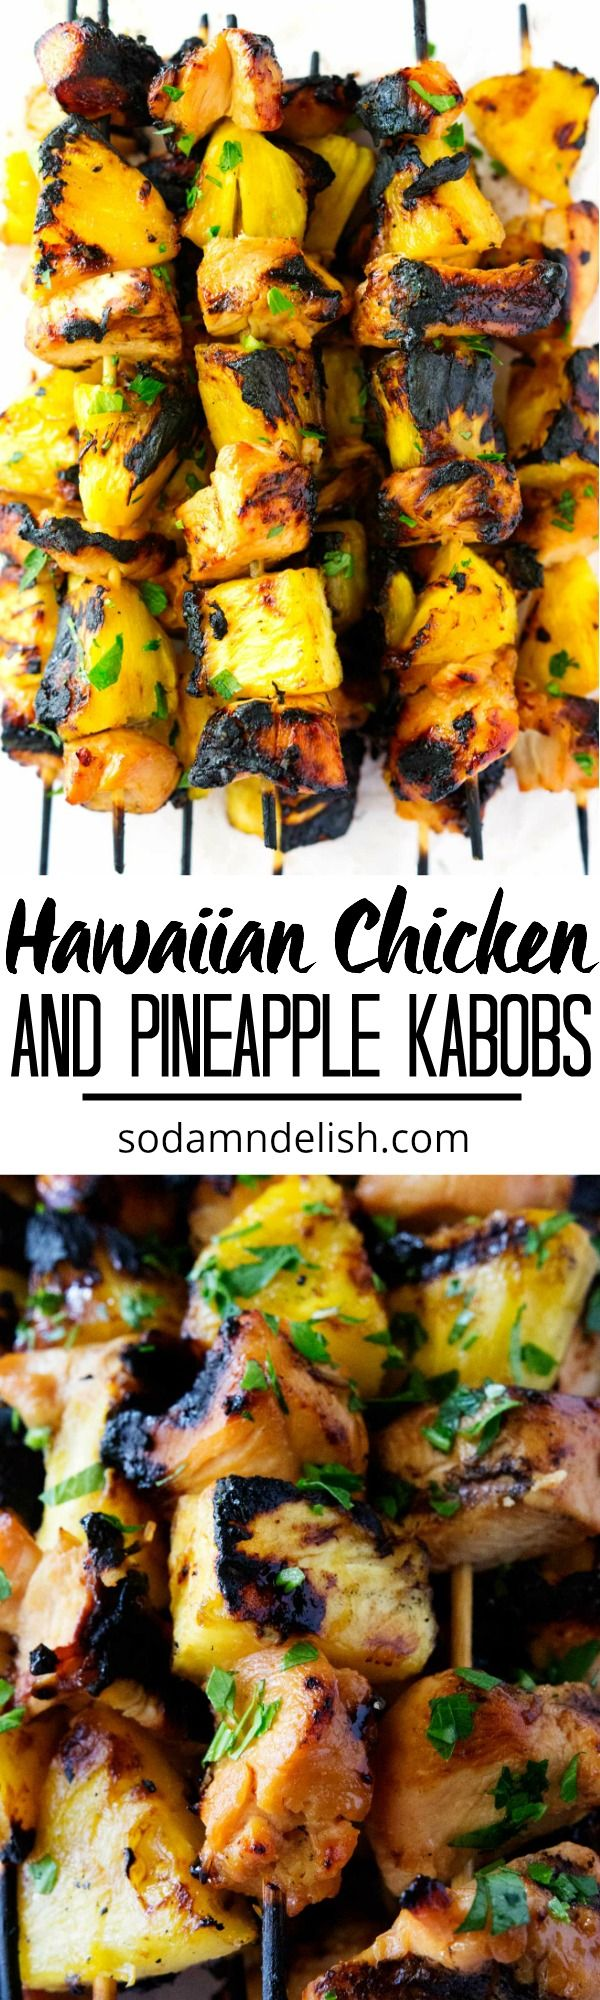 These Hawaiian Chicken and Pineapple Kabobs take chicken and pineapple to the next level. The Hawaiian marinade on the chicken and the brown sugar on the grilled pineapple are asurefire way to make a delicious meal in less than 10ish minutes cooking time!